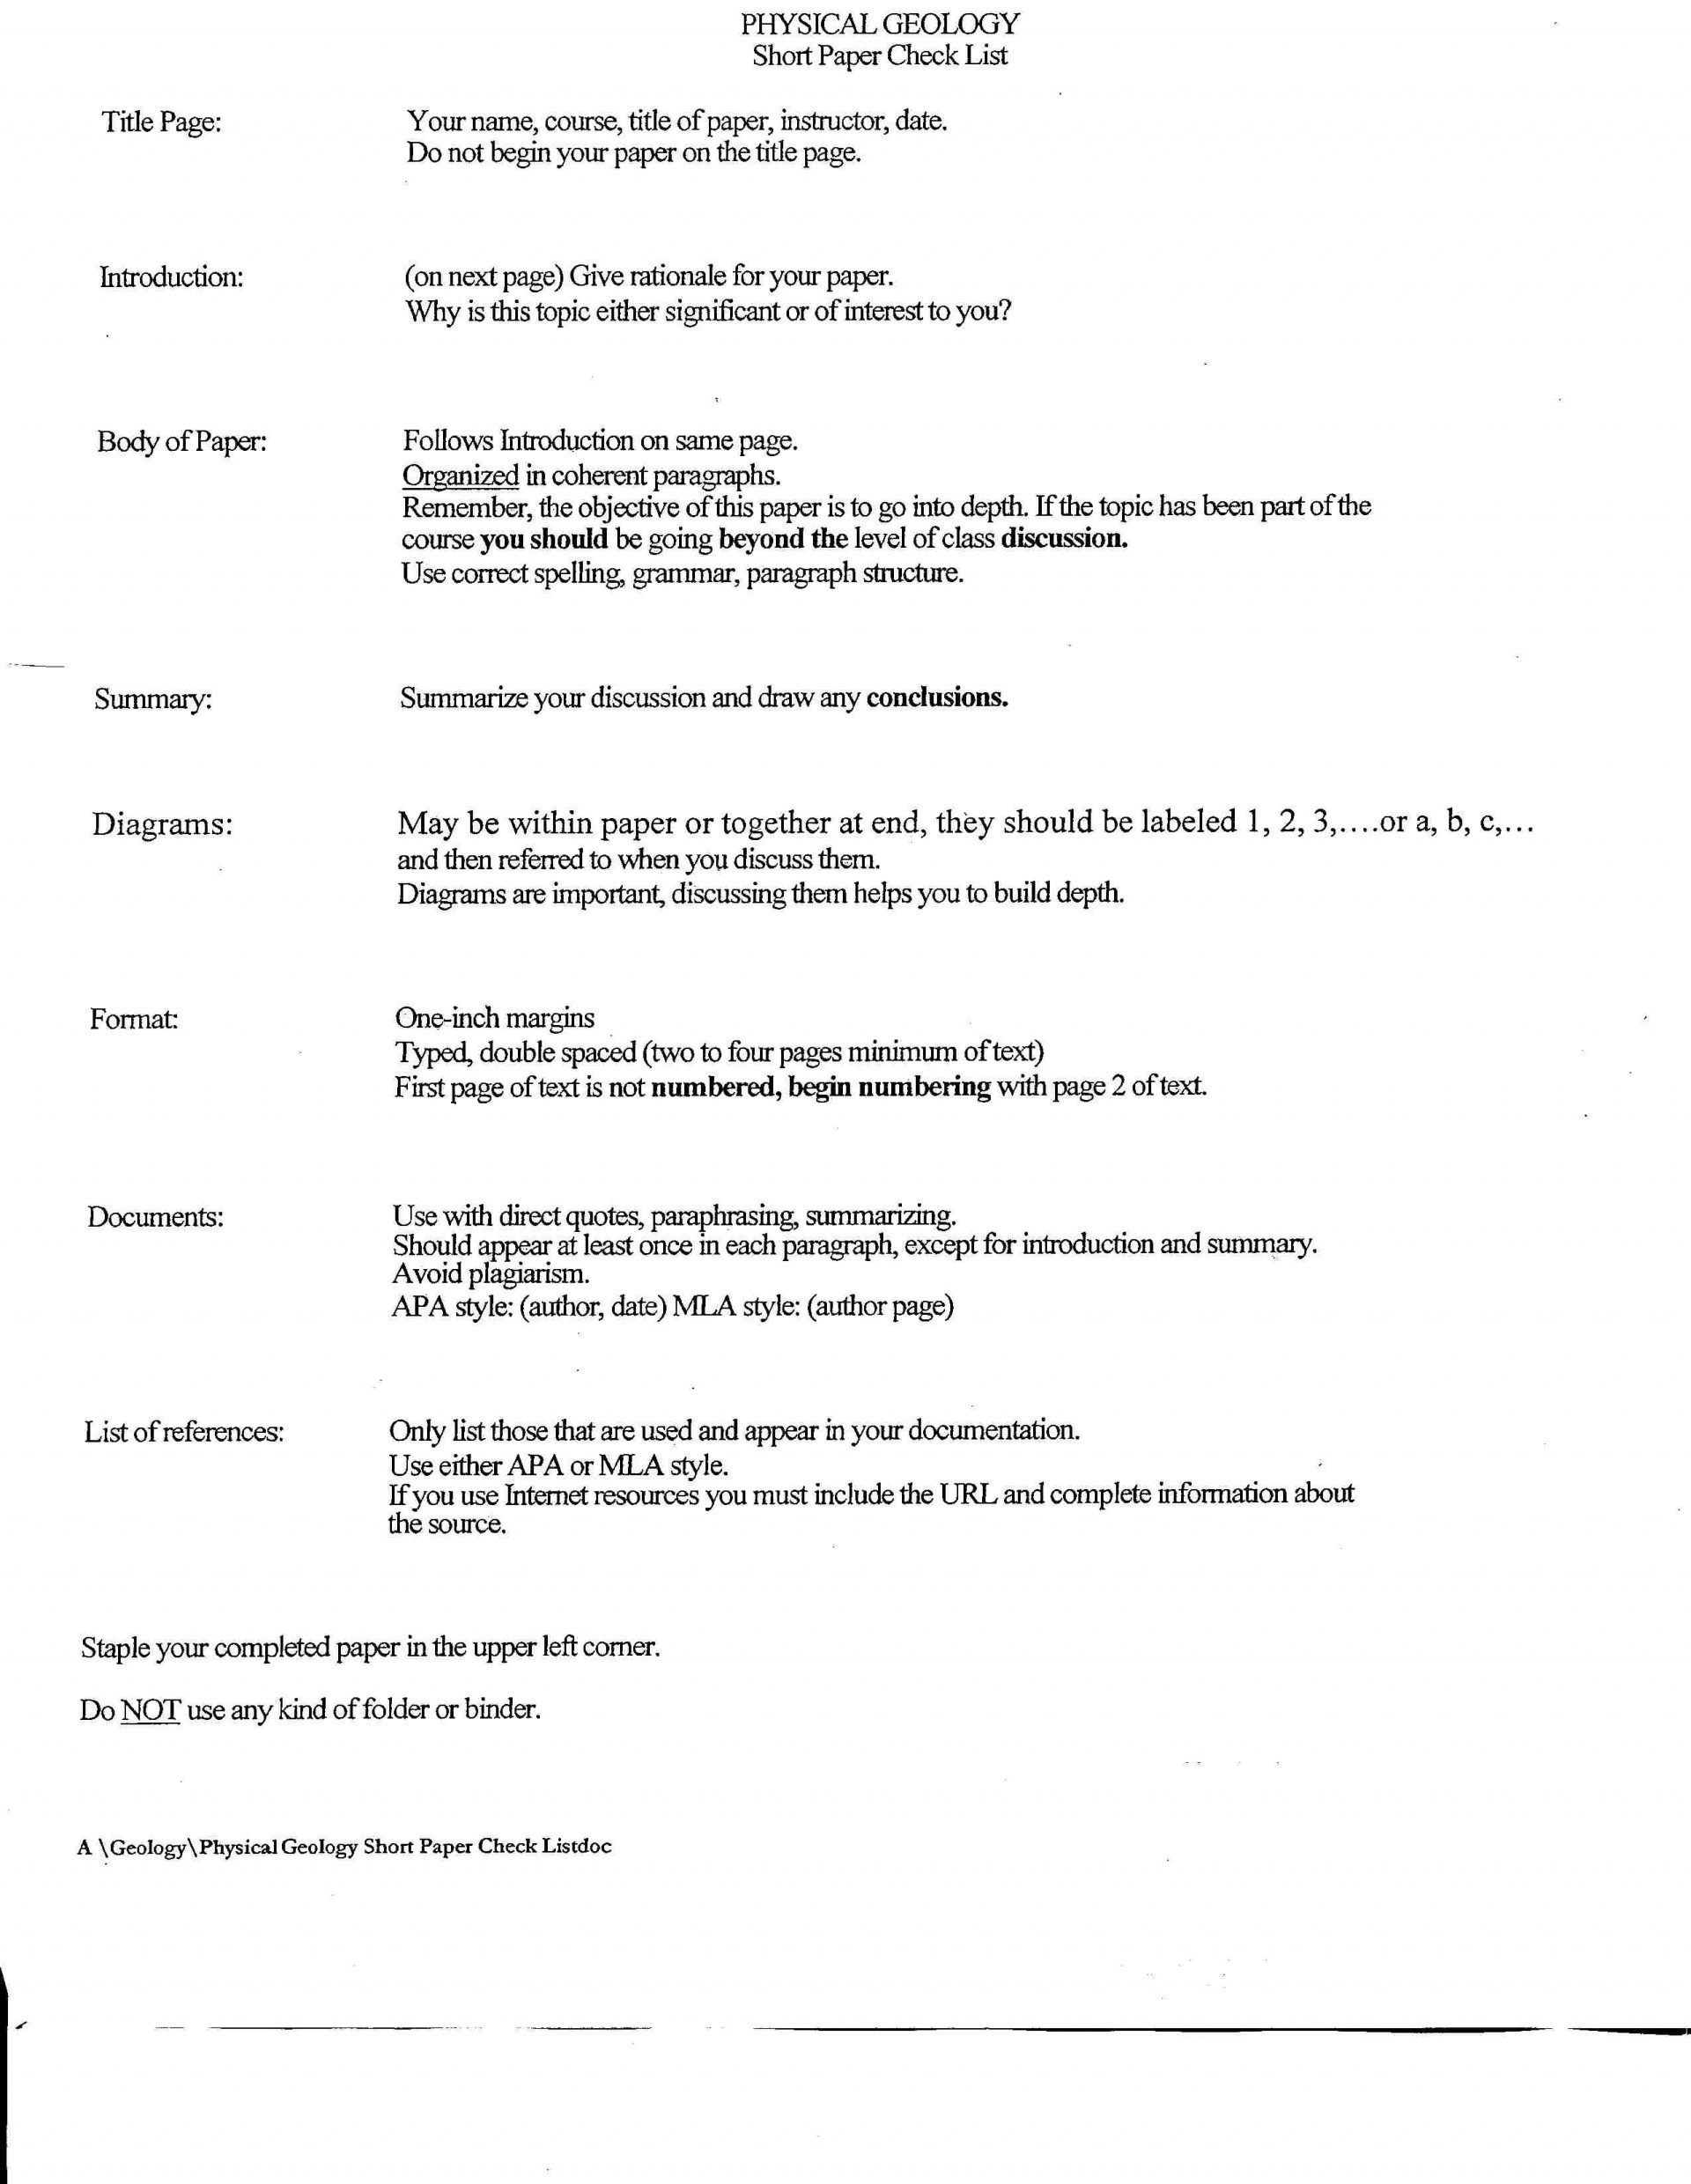 011 Research Paper Short Checklist Introductions To Papers Sensational Example 1920